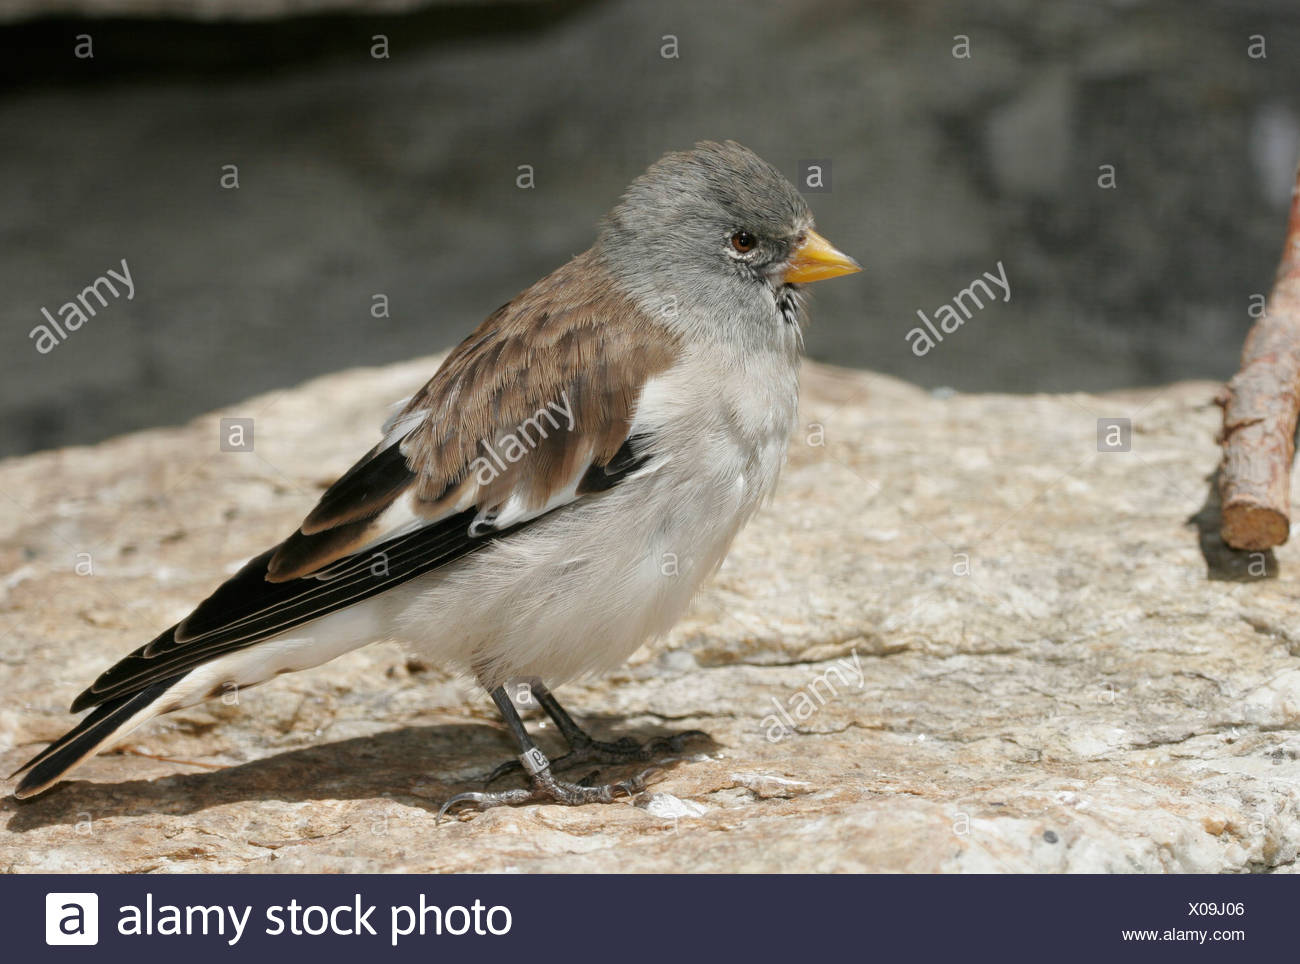 zoology / animals, avian / bird, passeriformes, White-winged Snowfinch (Mantifringilla nivalis), on stone, Lech Valley, Austria, distribution: Europe, Additional-Rights-Clearance-Info-Not-Available - Stock Image